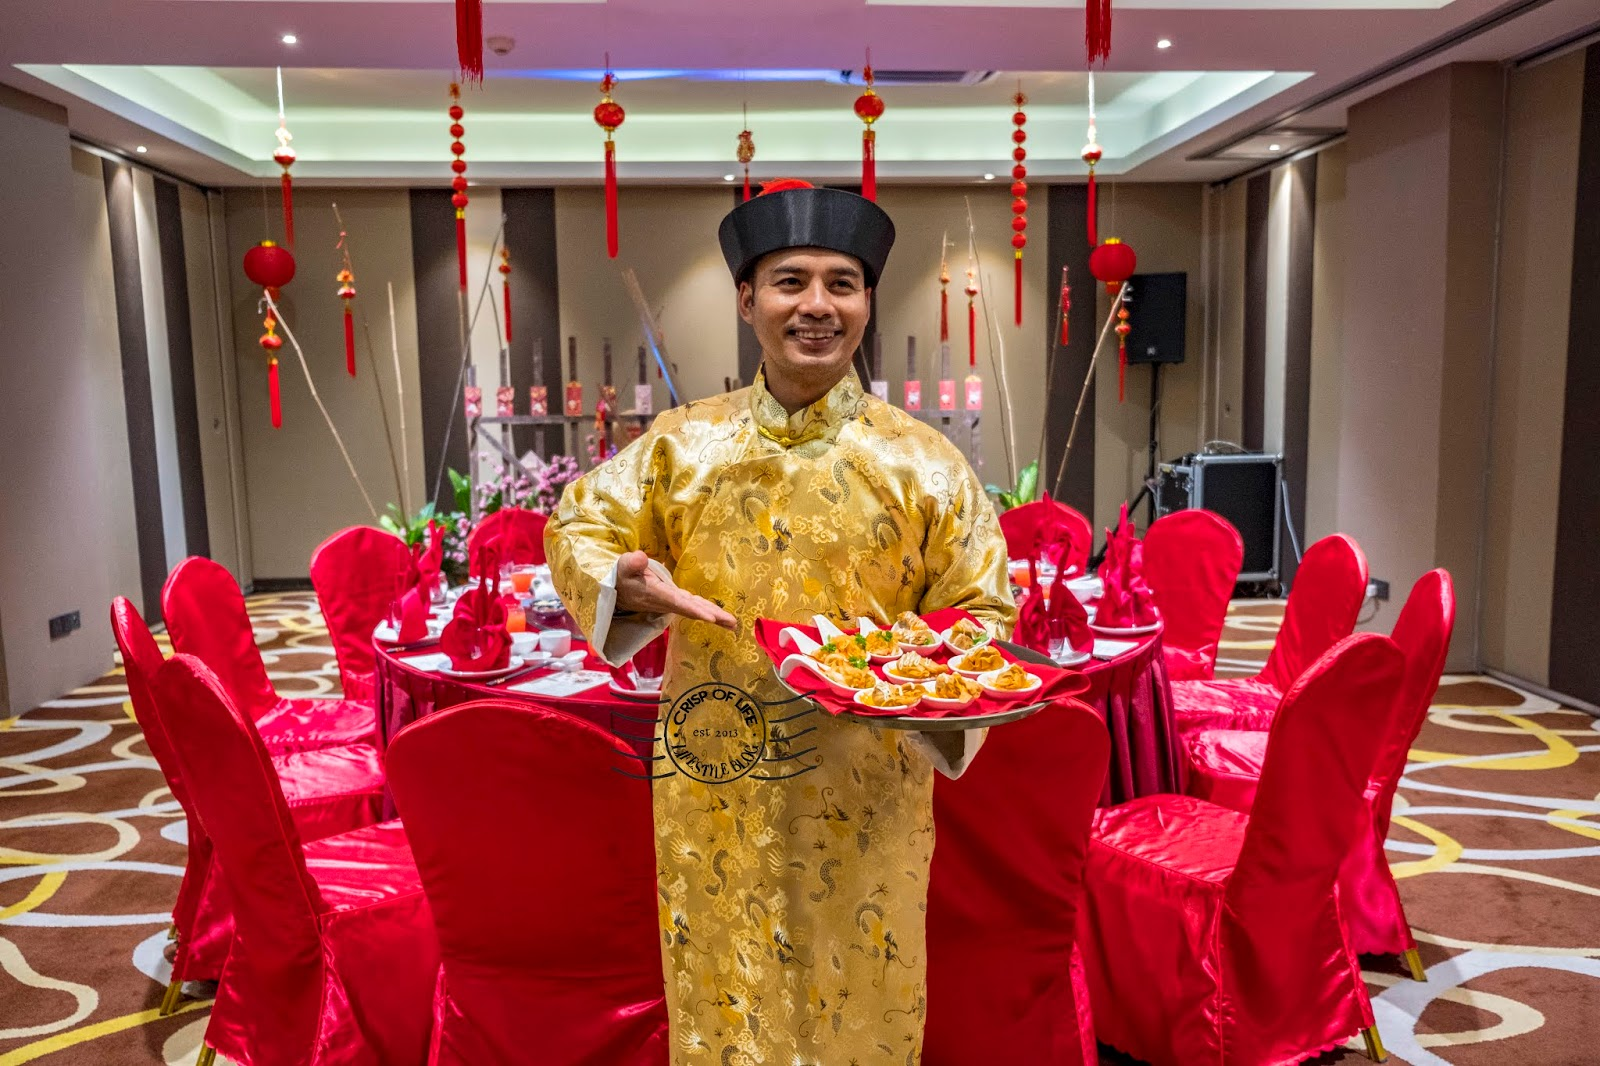 Chinese New Year 2019 Menu - Poon Choi & Course Dinner by Iconic Hotel, Penang